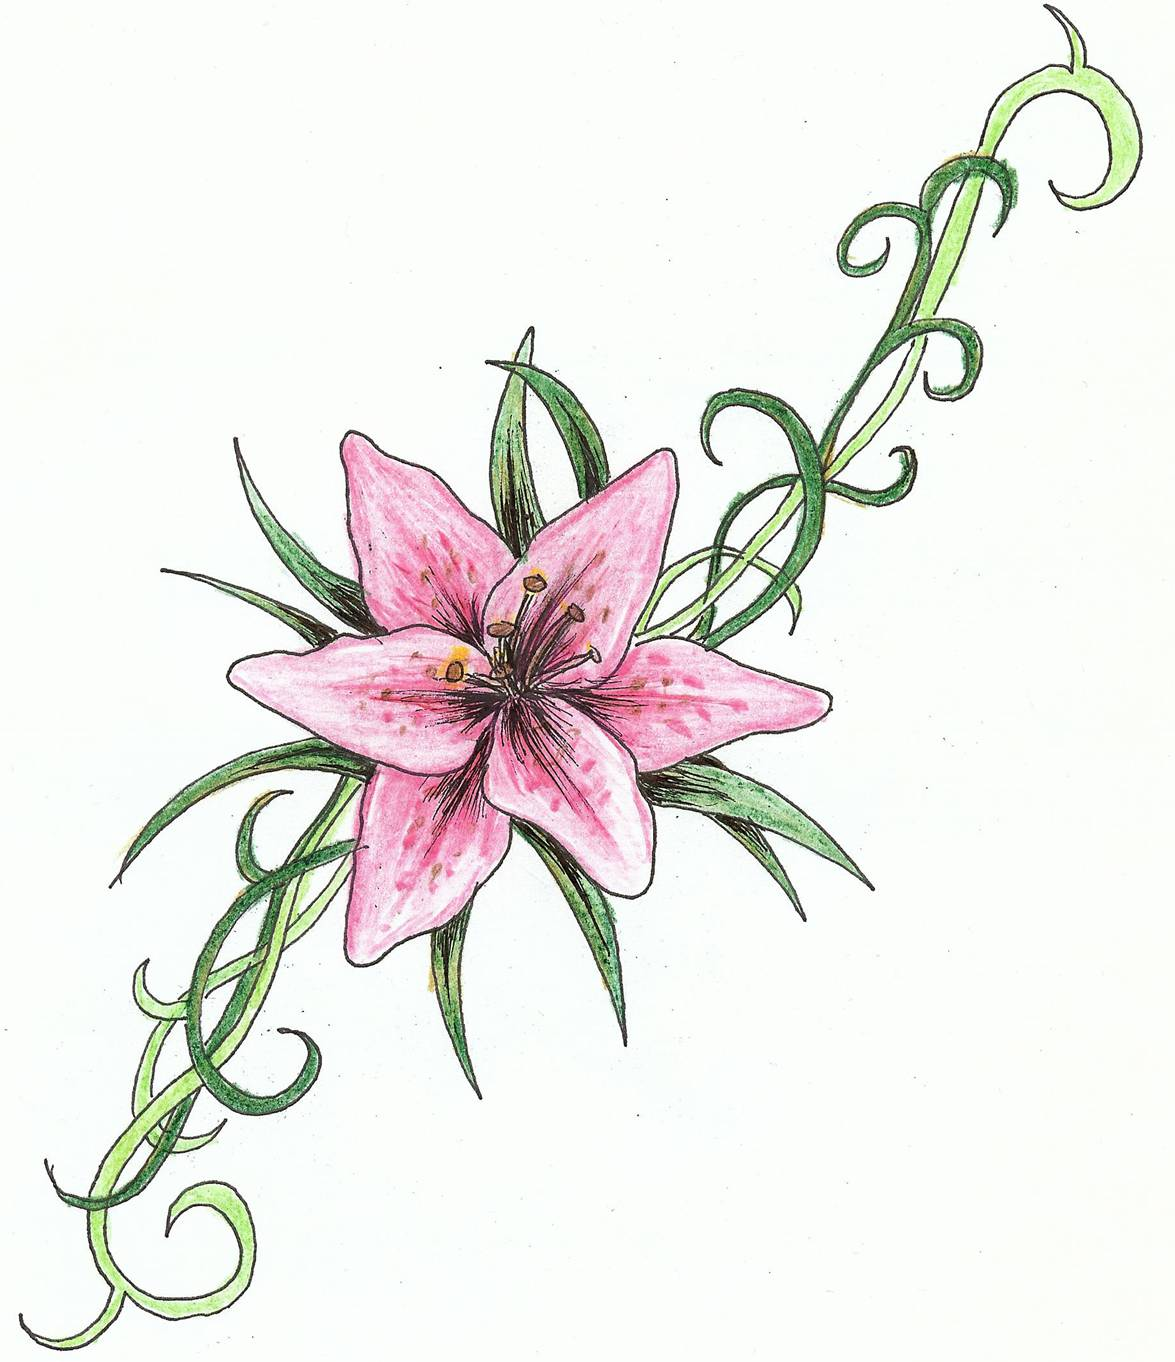 Flower meanings lily - Pink Lily Vine Tattoo Design